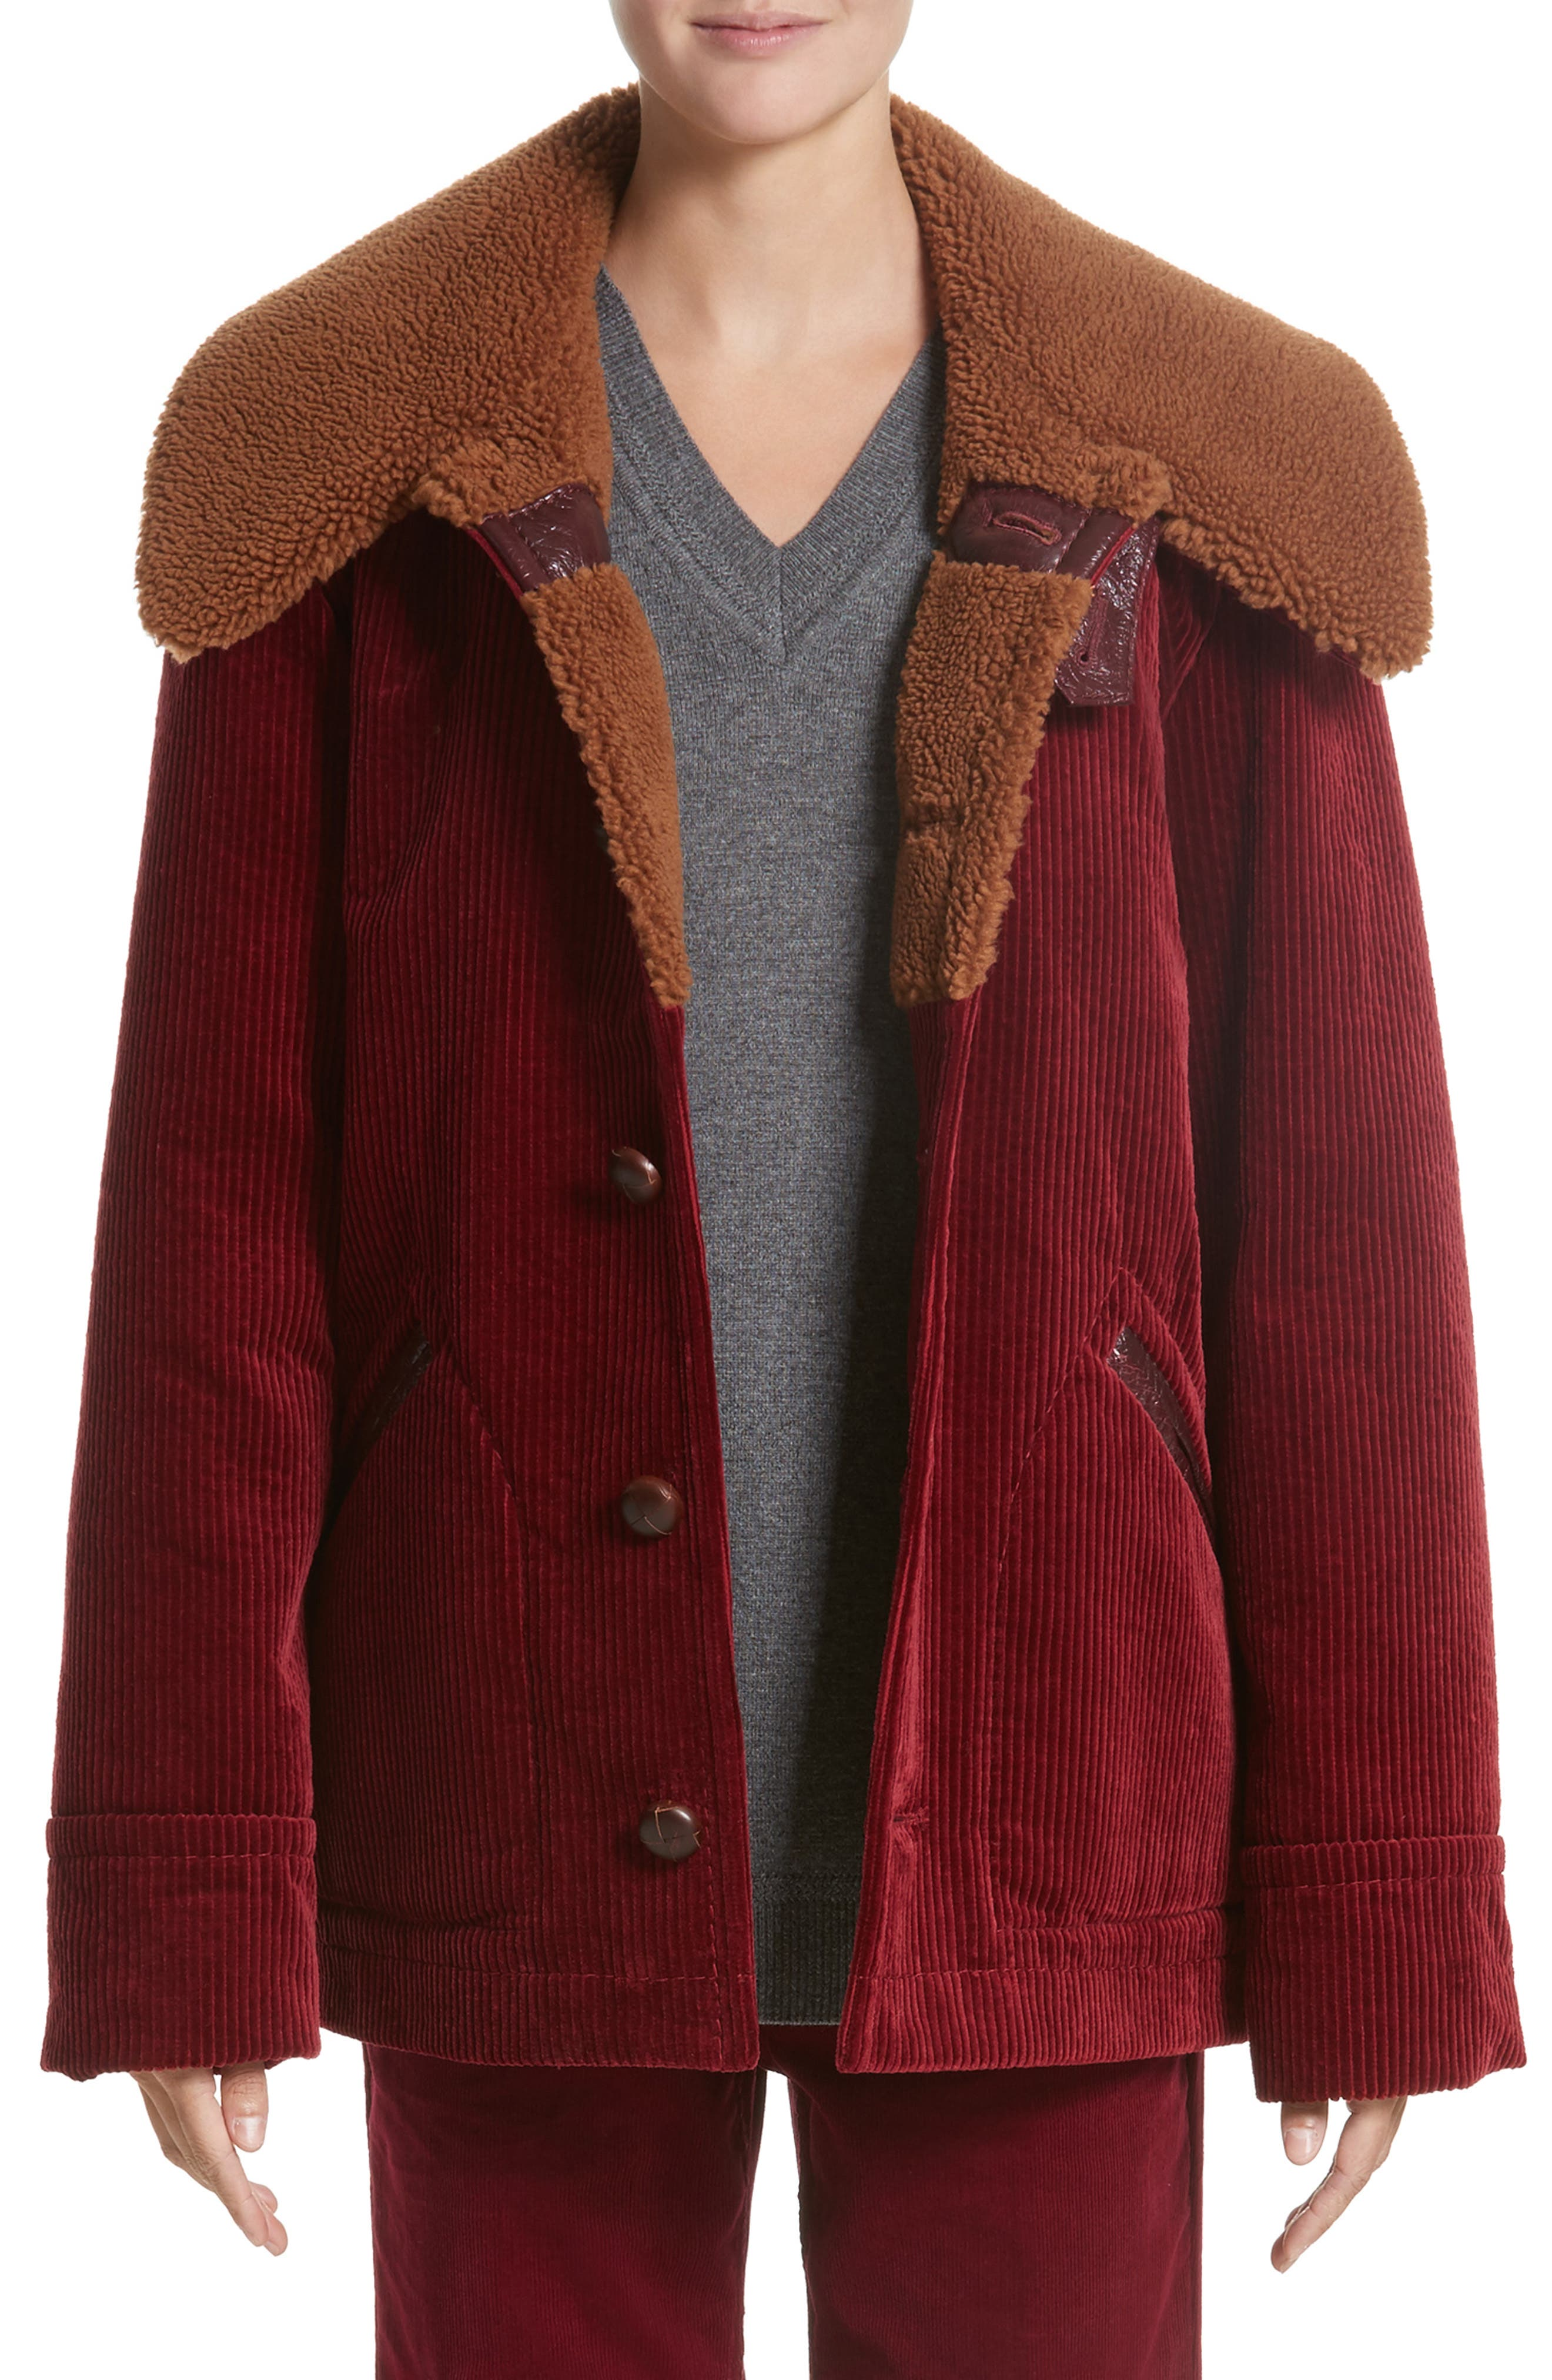 Main Image - MARC JACOBS Corduroy Coat with Faux Shearling Collar